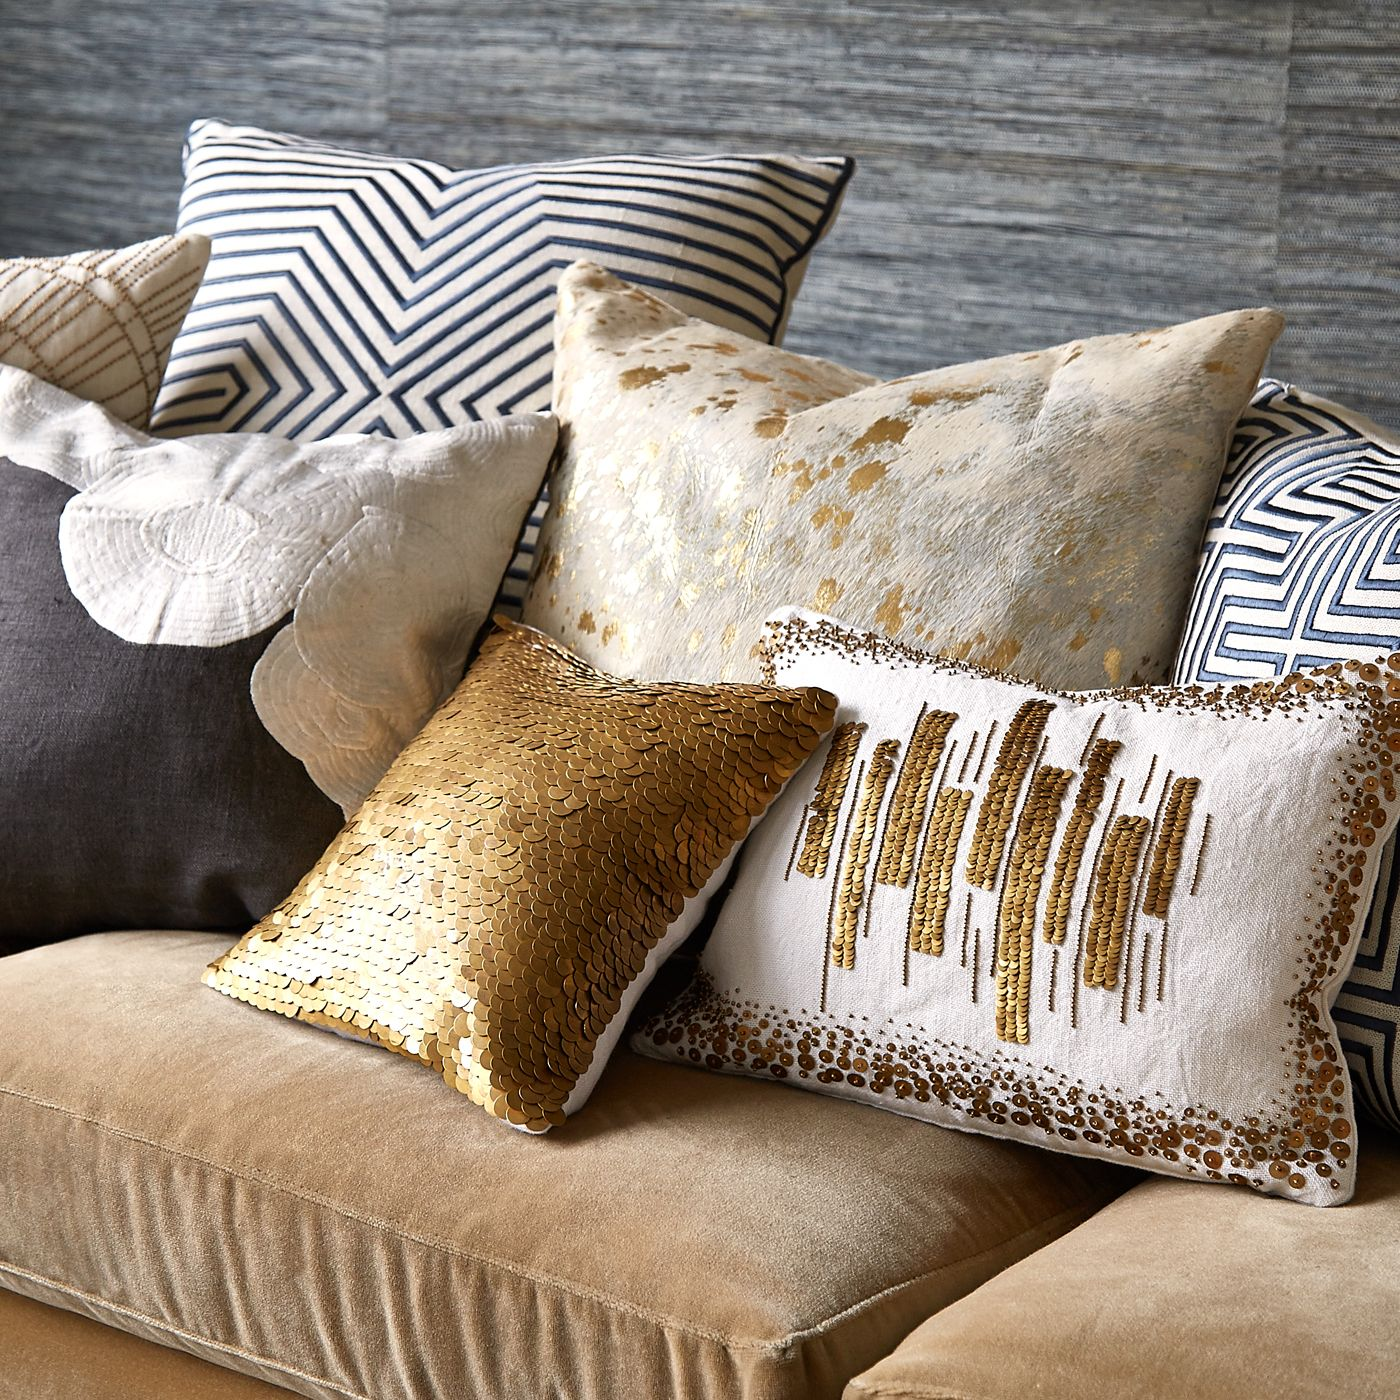 Jonathan Adler pillows Also eyeballing the fabric on the sofa